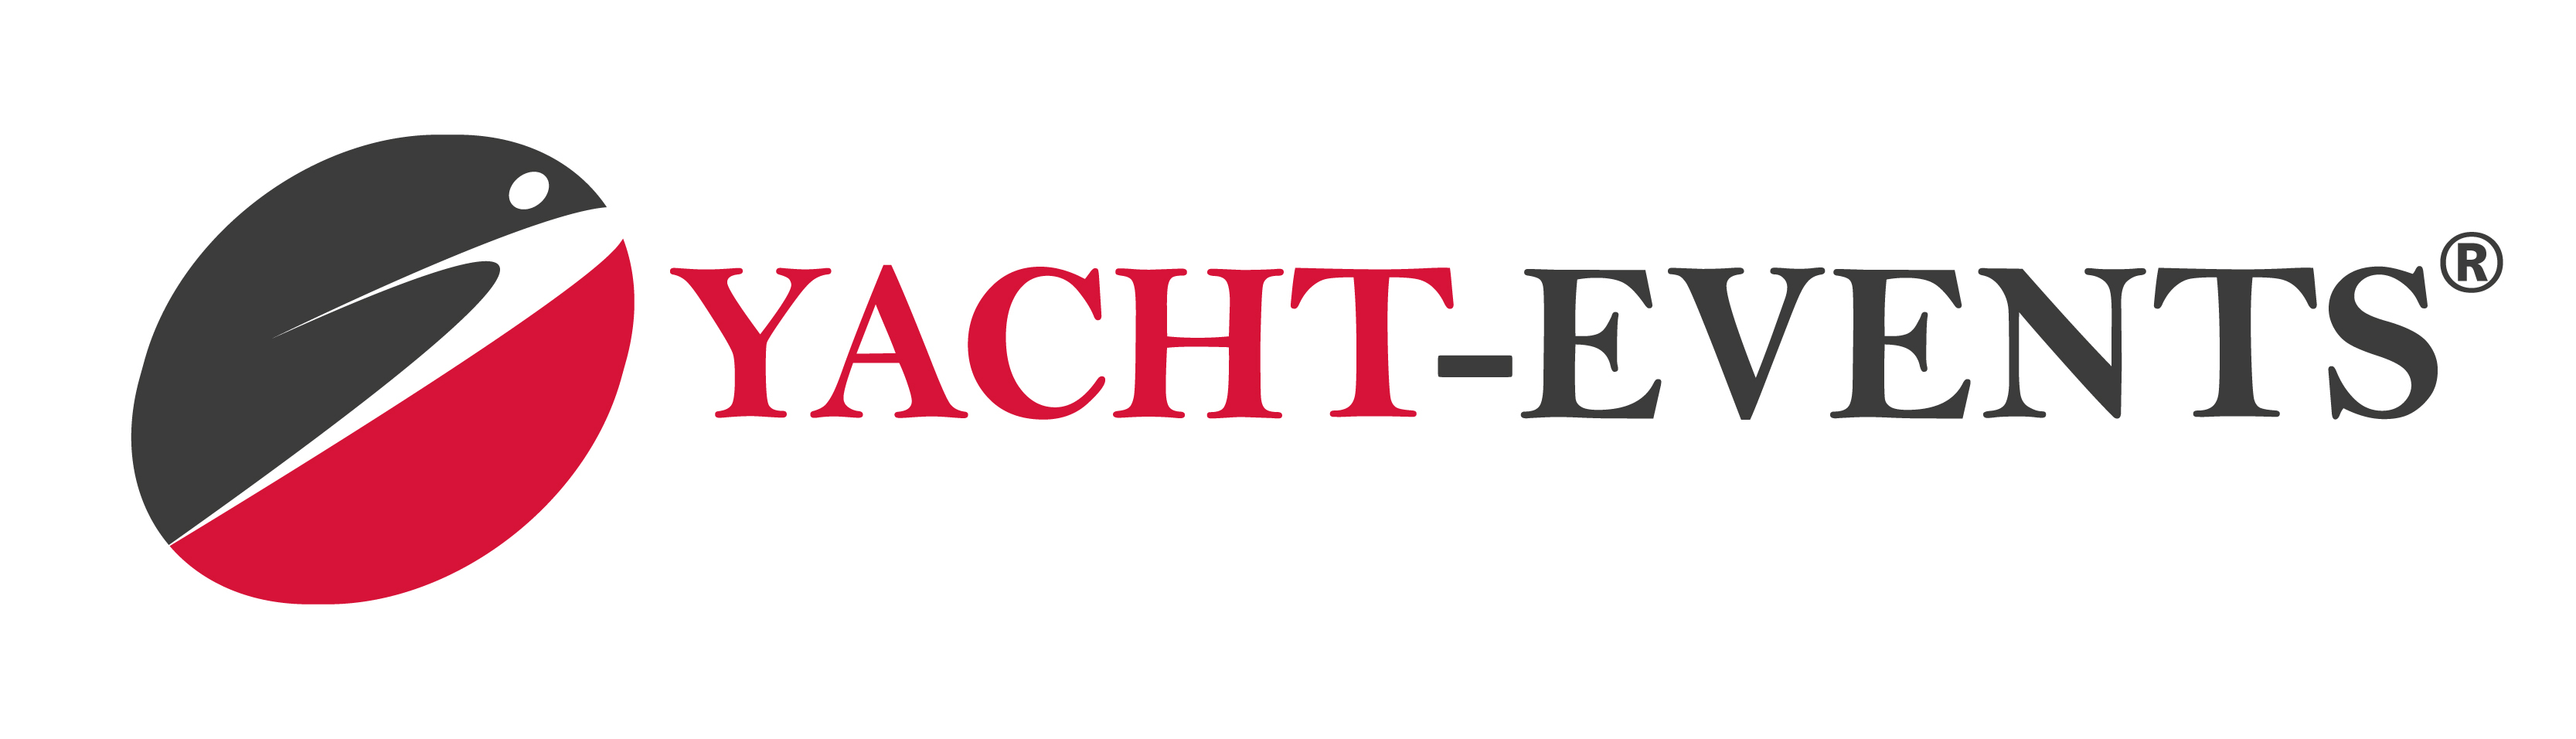 Logo_yacht-events_Registed